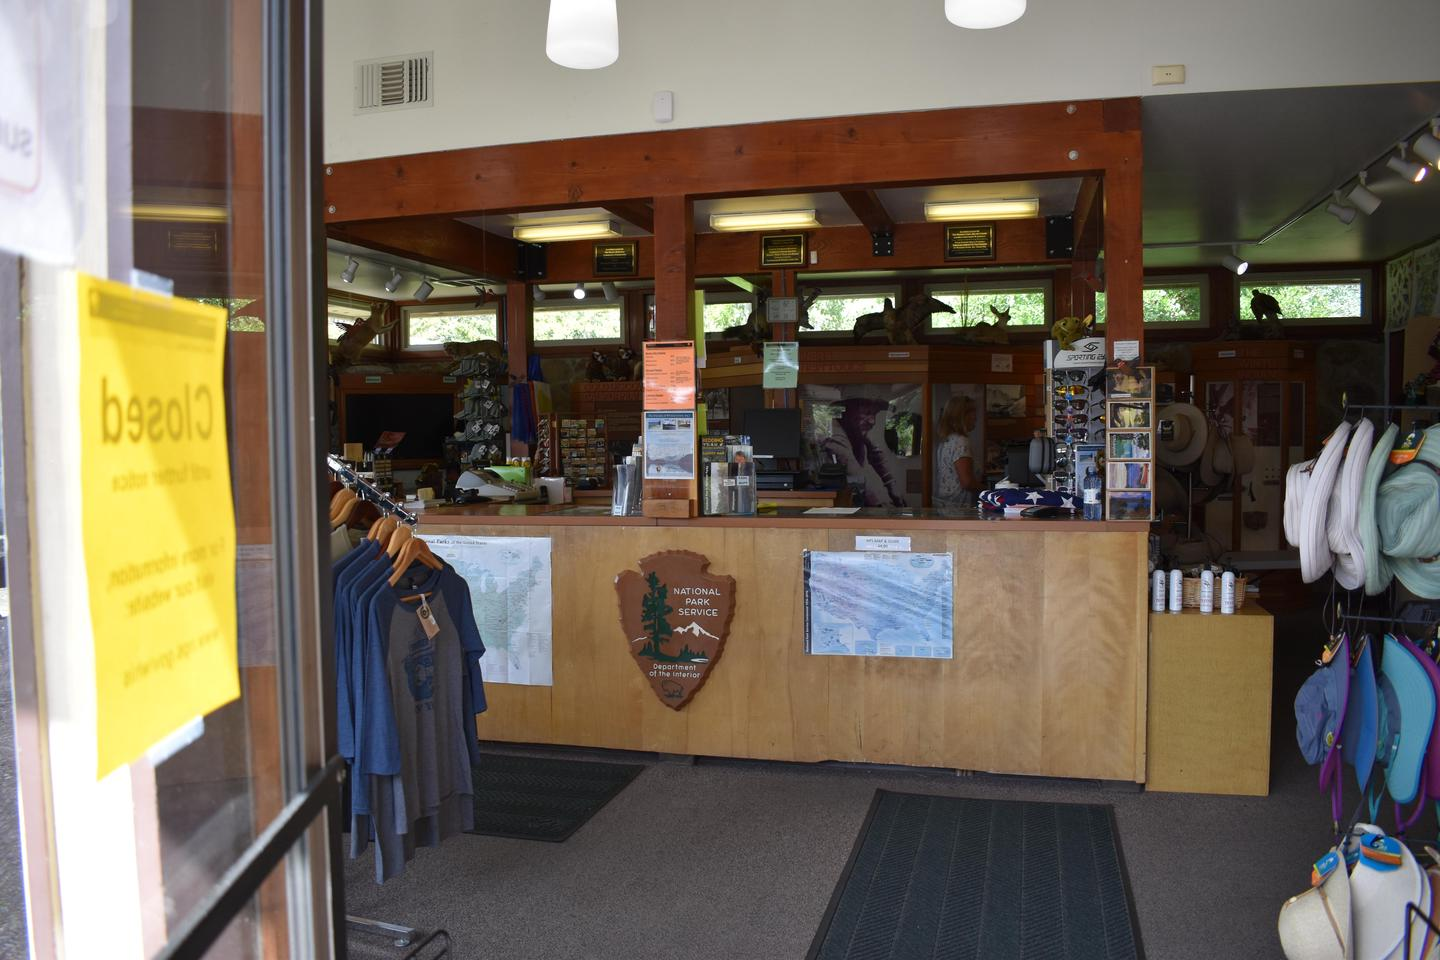 VC interiorWhiskeytown NRA Visitor Center Interior